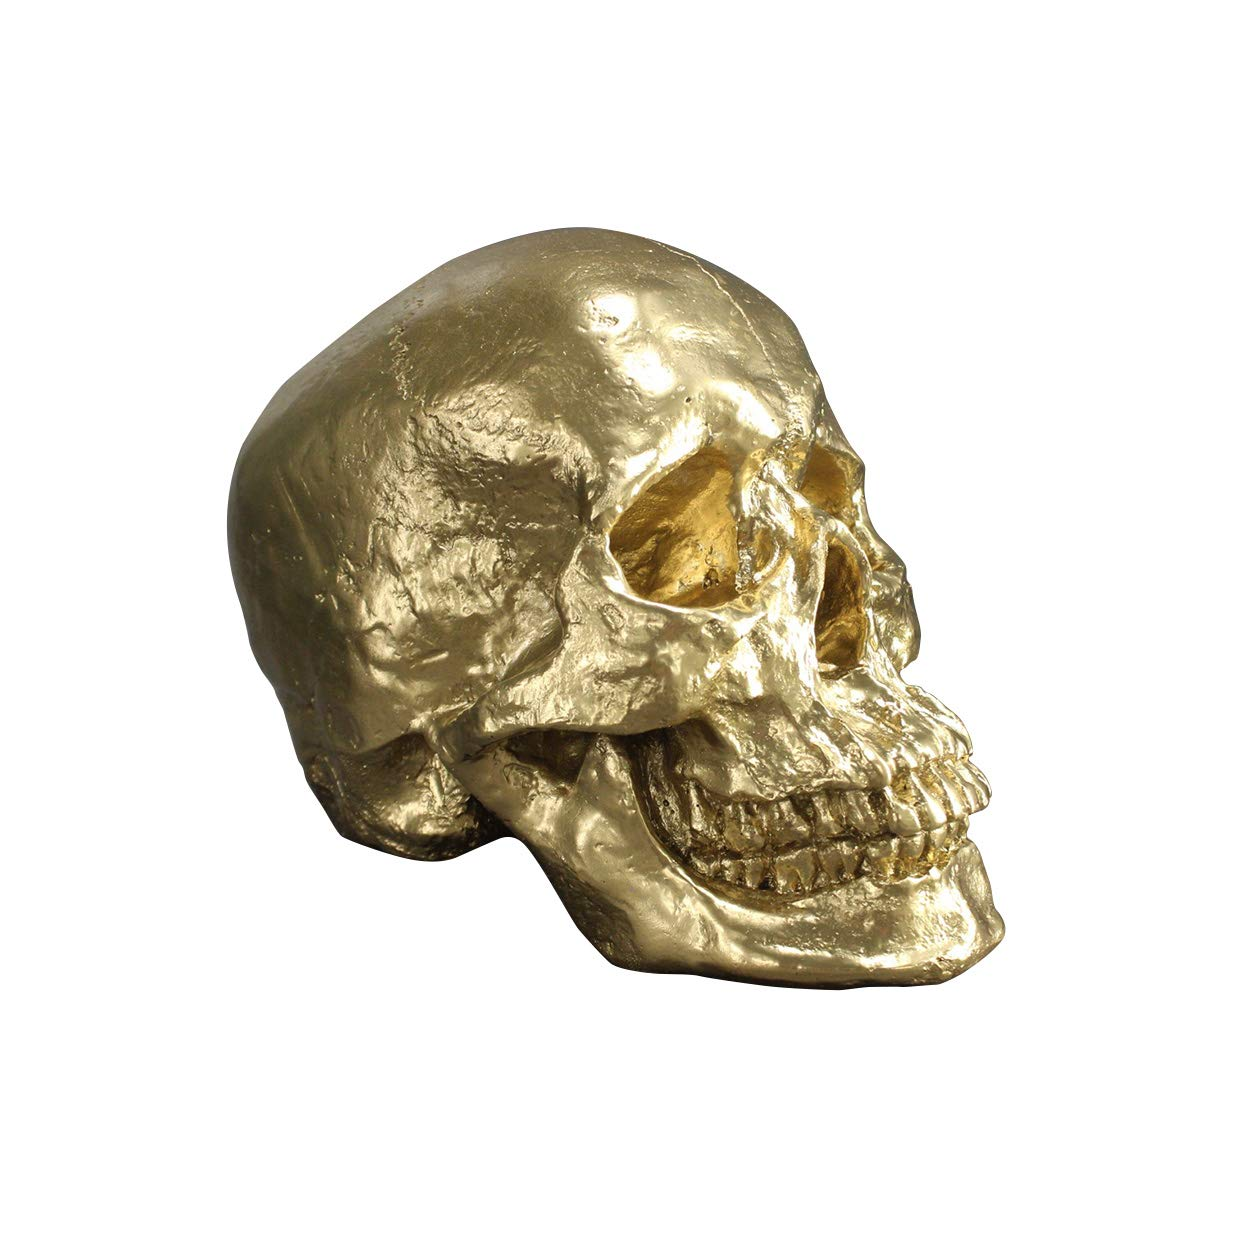 Wall Charmers Life Size Human Skull - 8.5'' Gold Faux Human Anatomy - Table Top Skeleton Head Home Decor